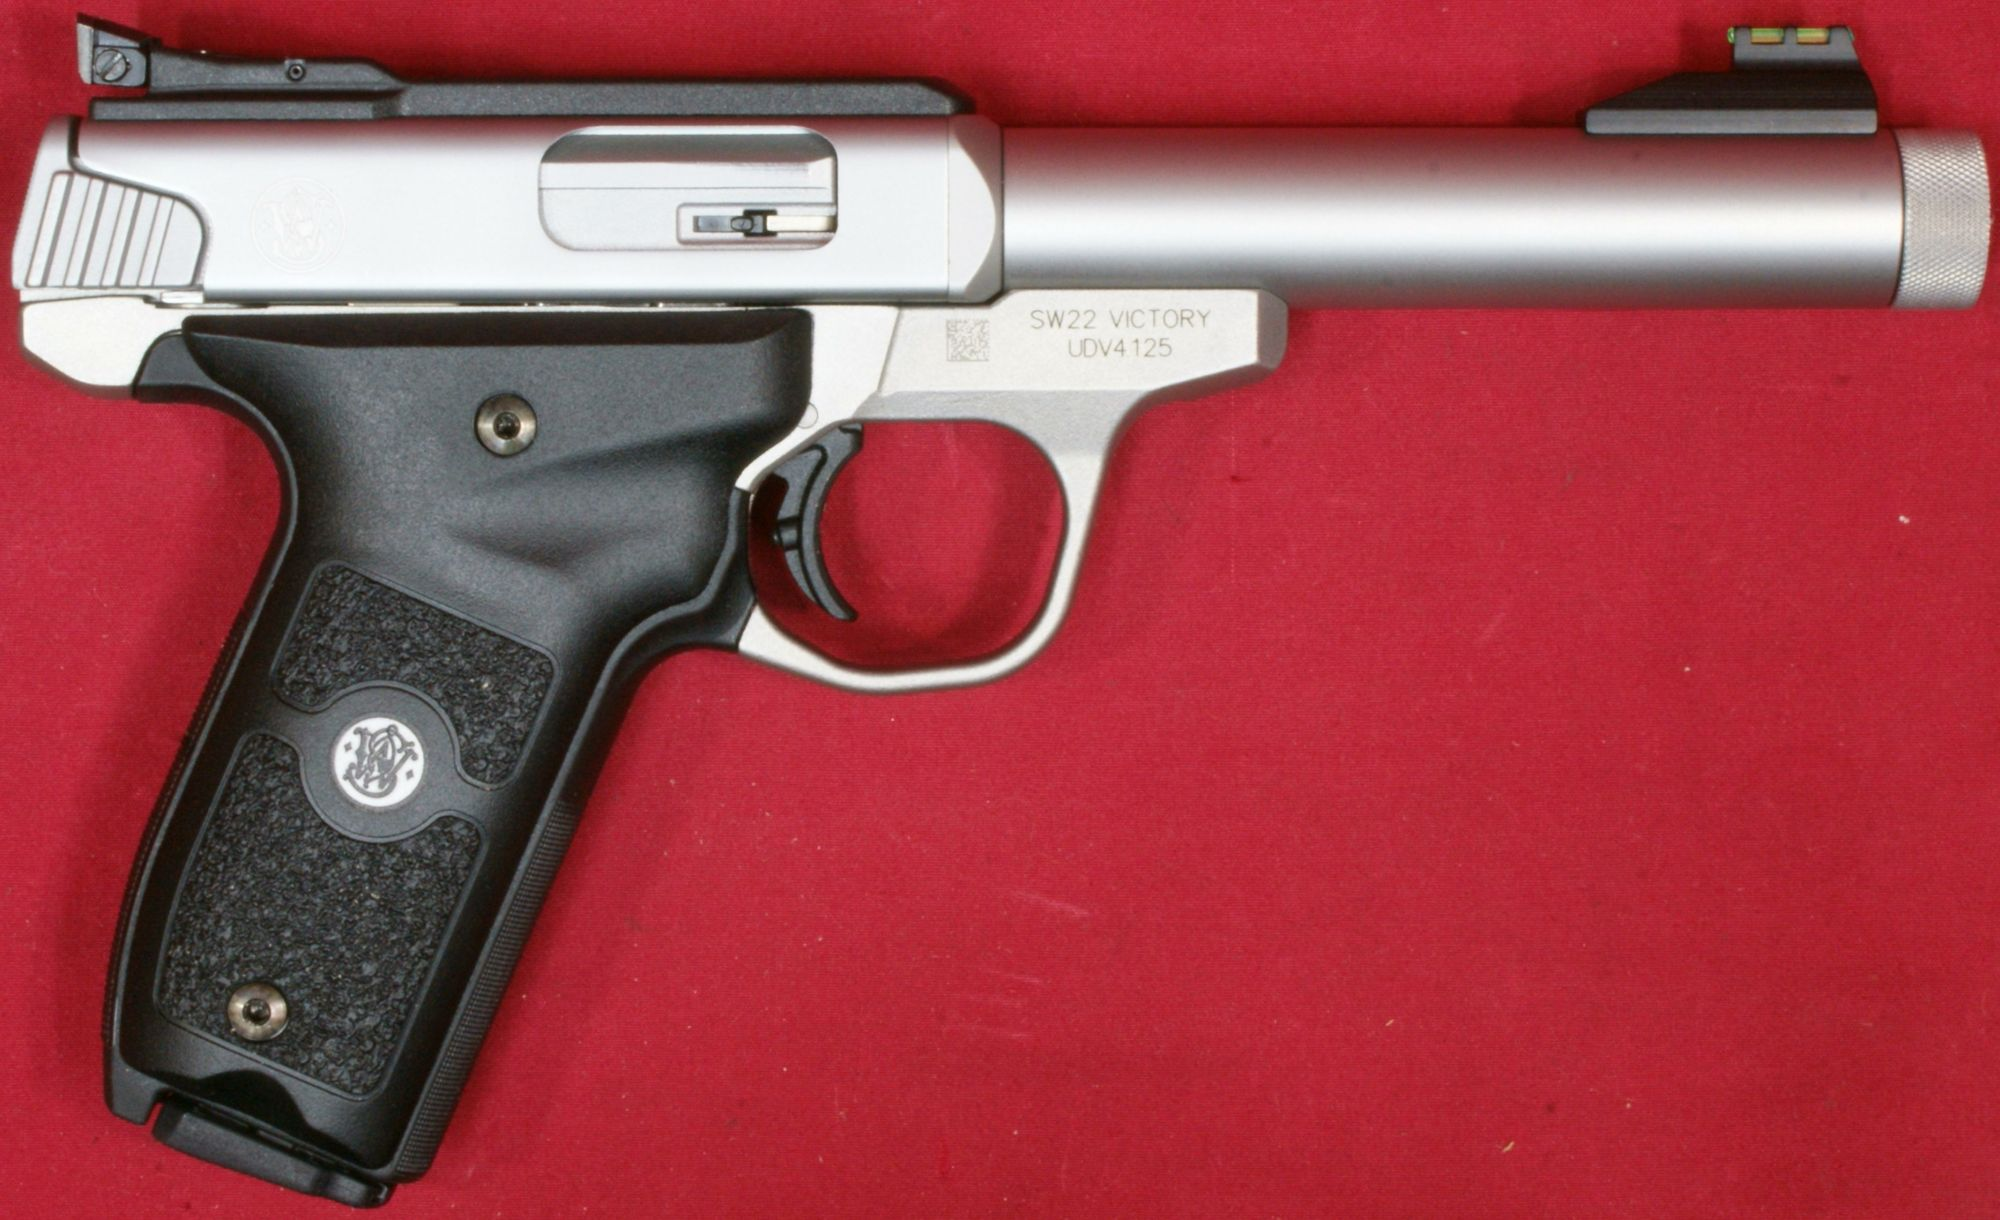 hight resolution of smith wesson sw22 victory pistol review part 4 disassembly internal features